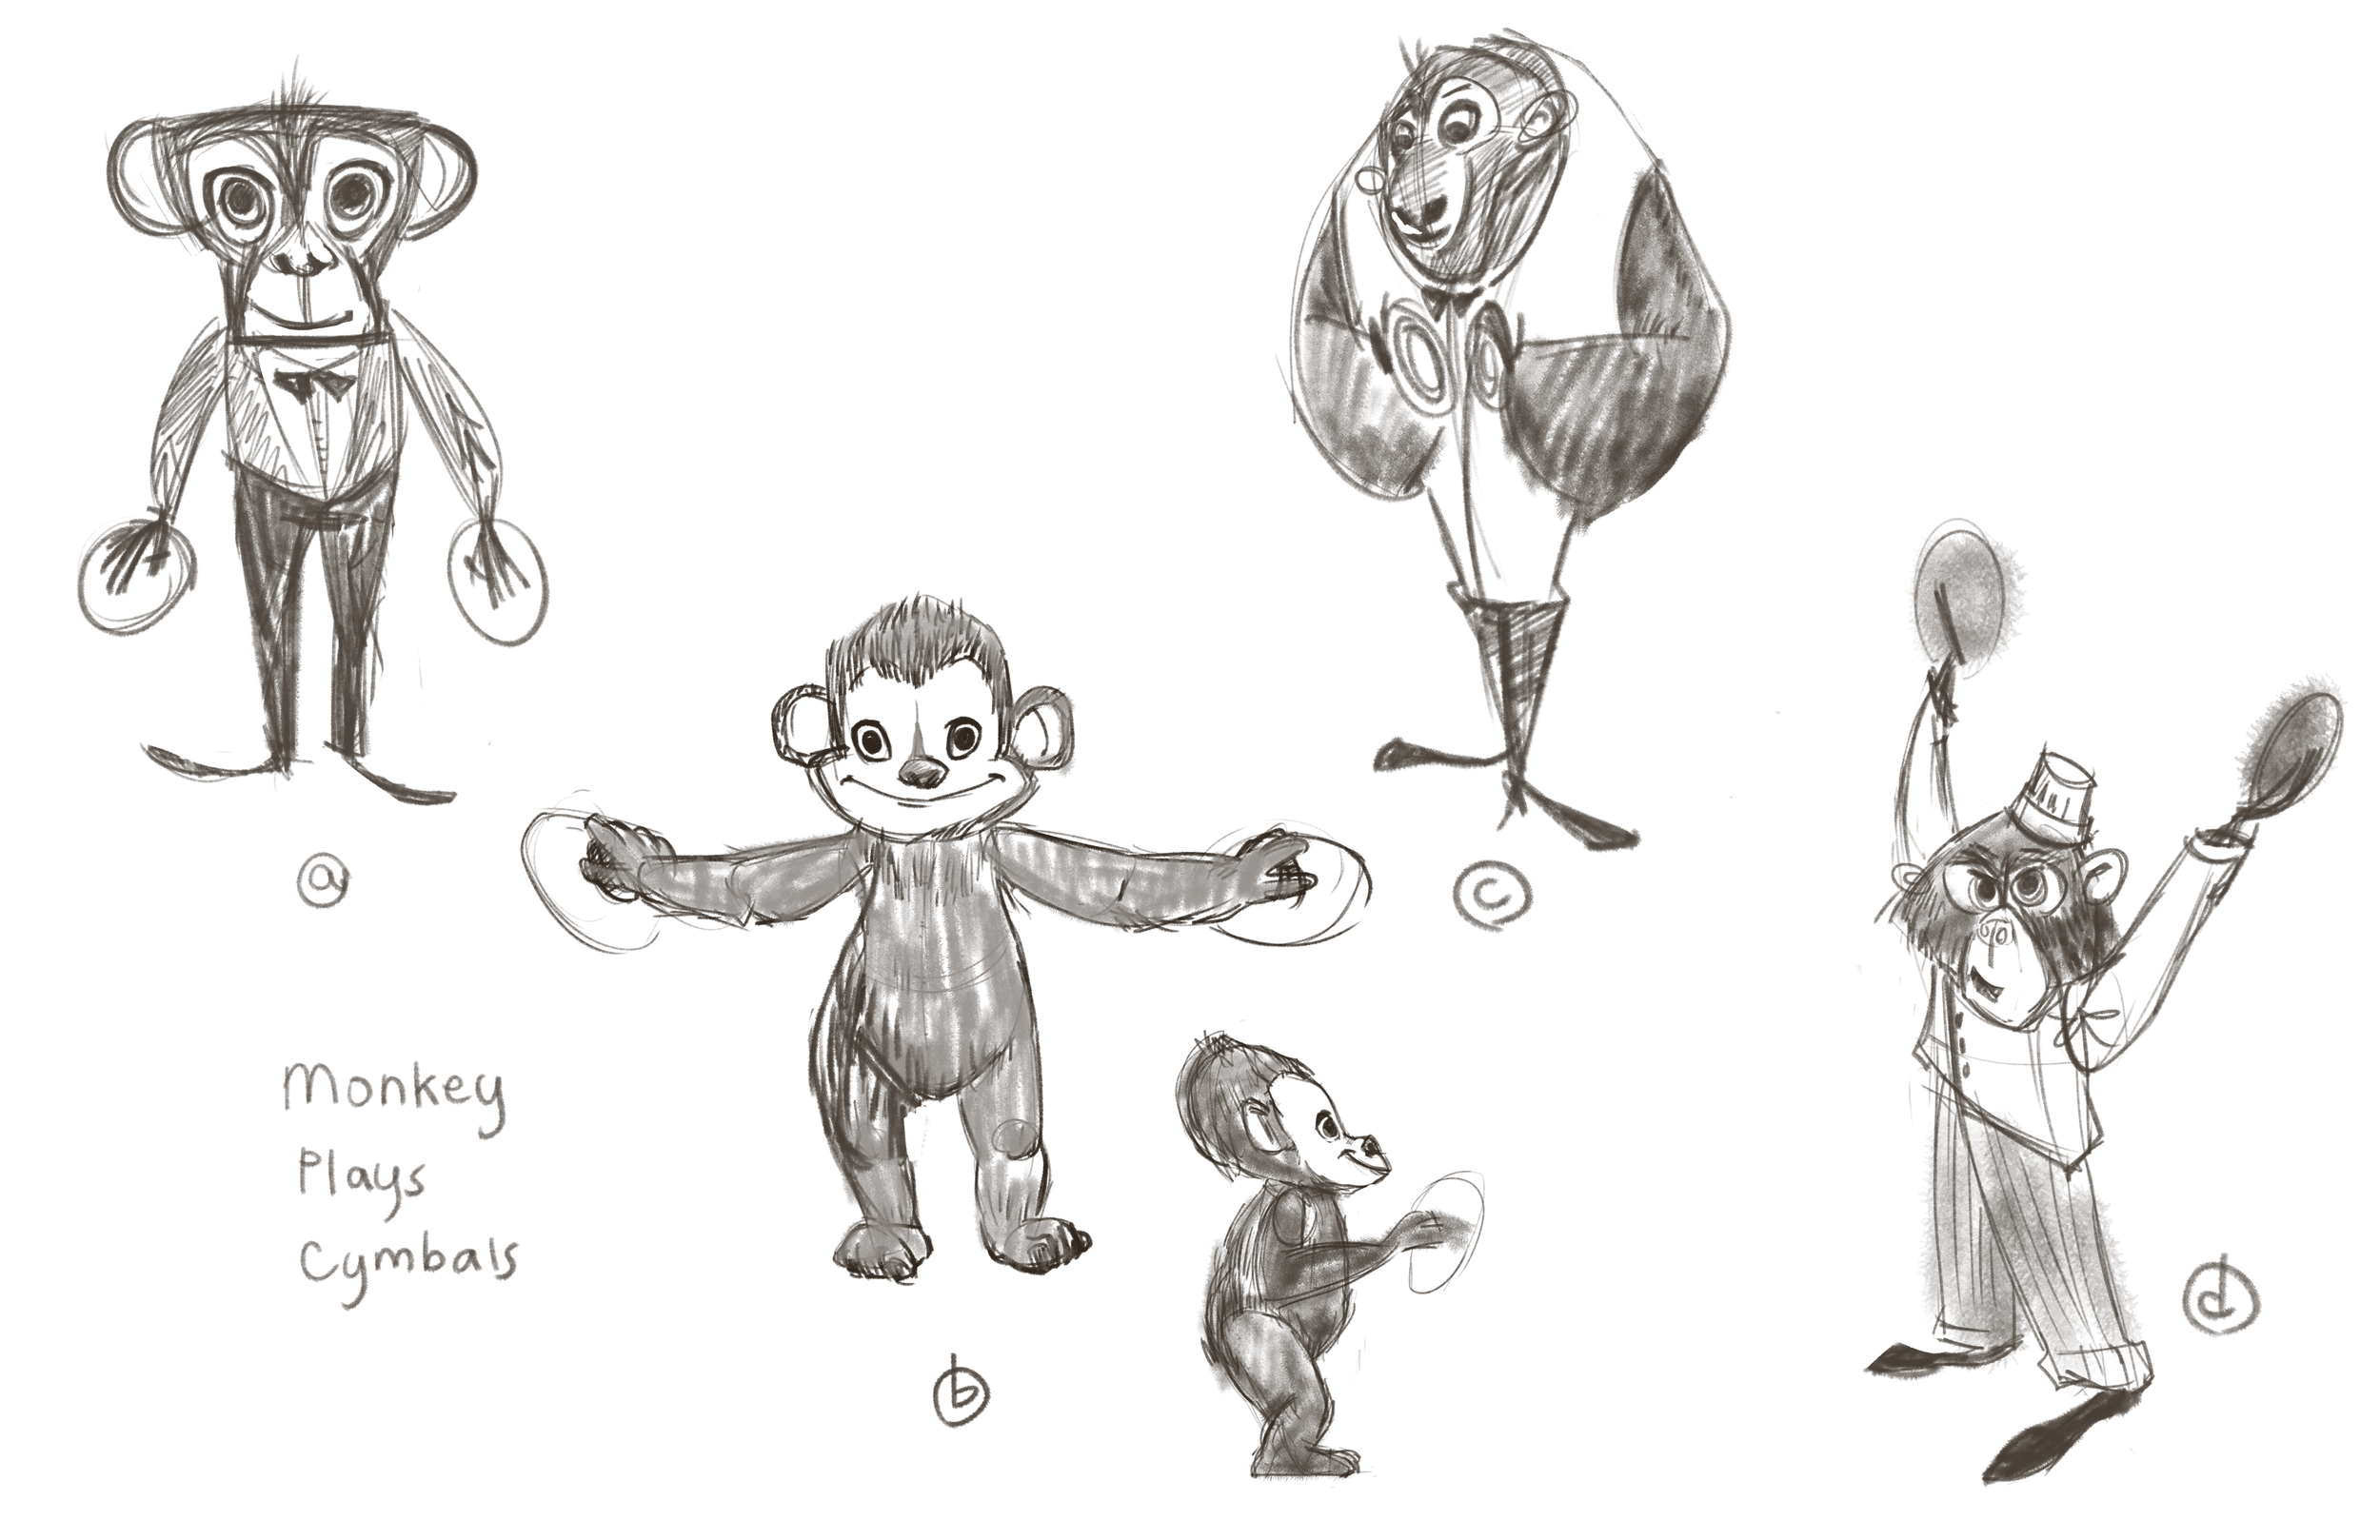 Monkey Plays Cymbals, Rough Concept